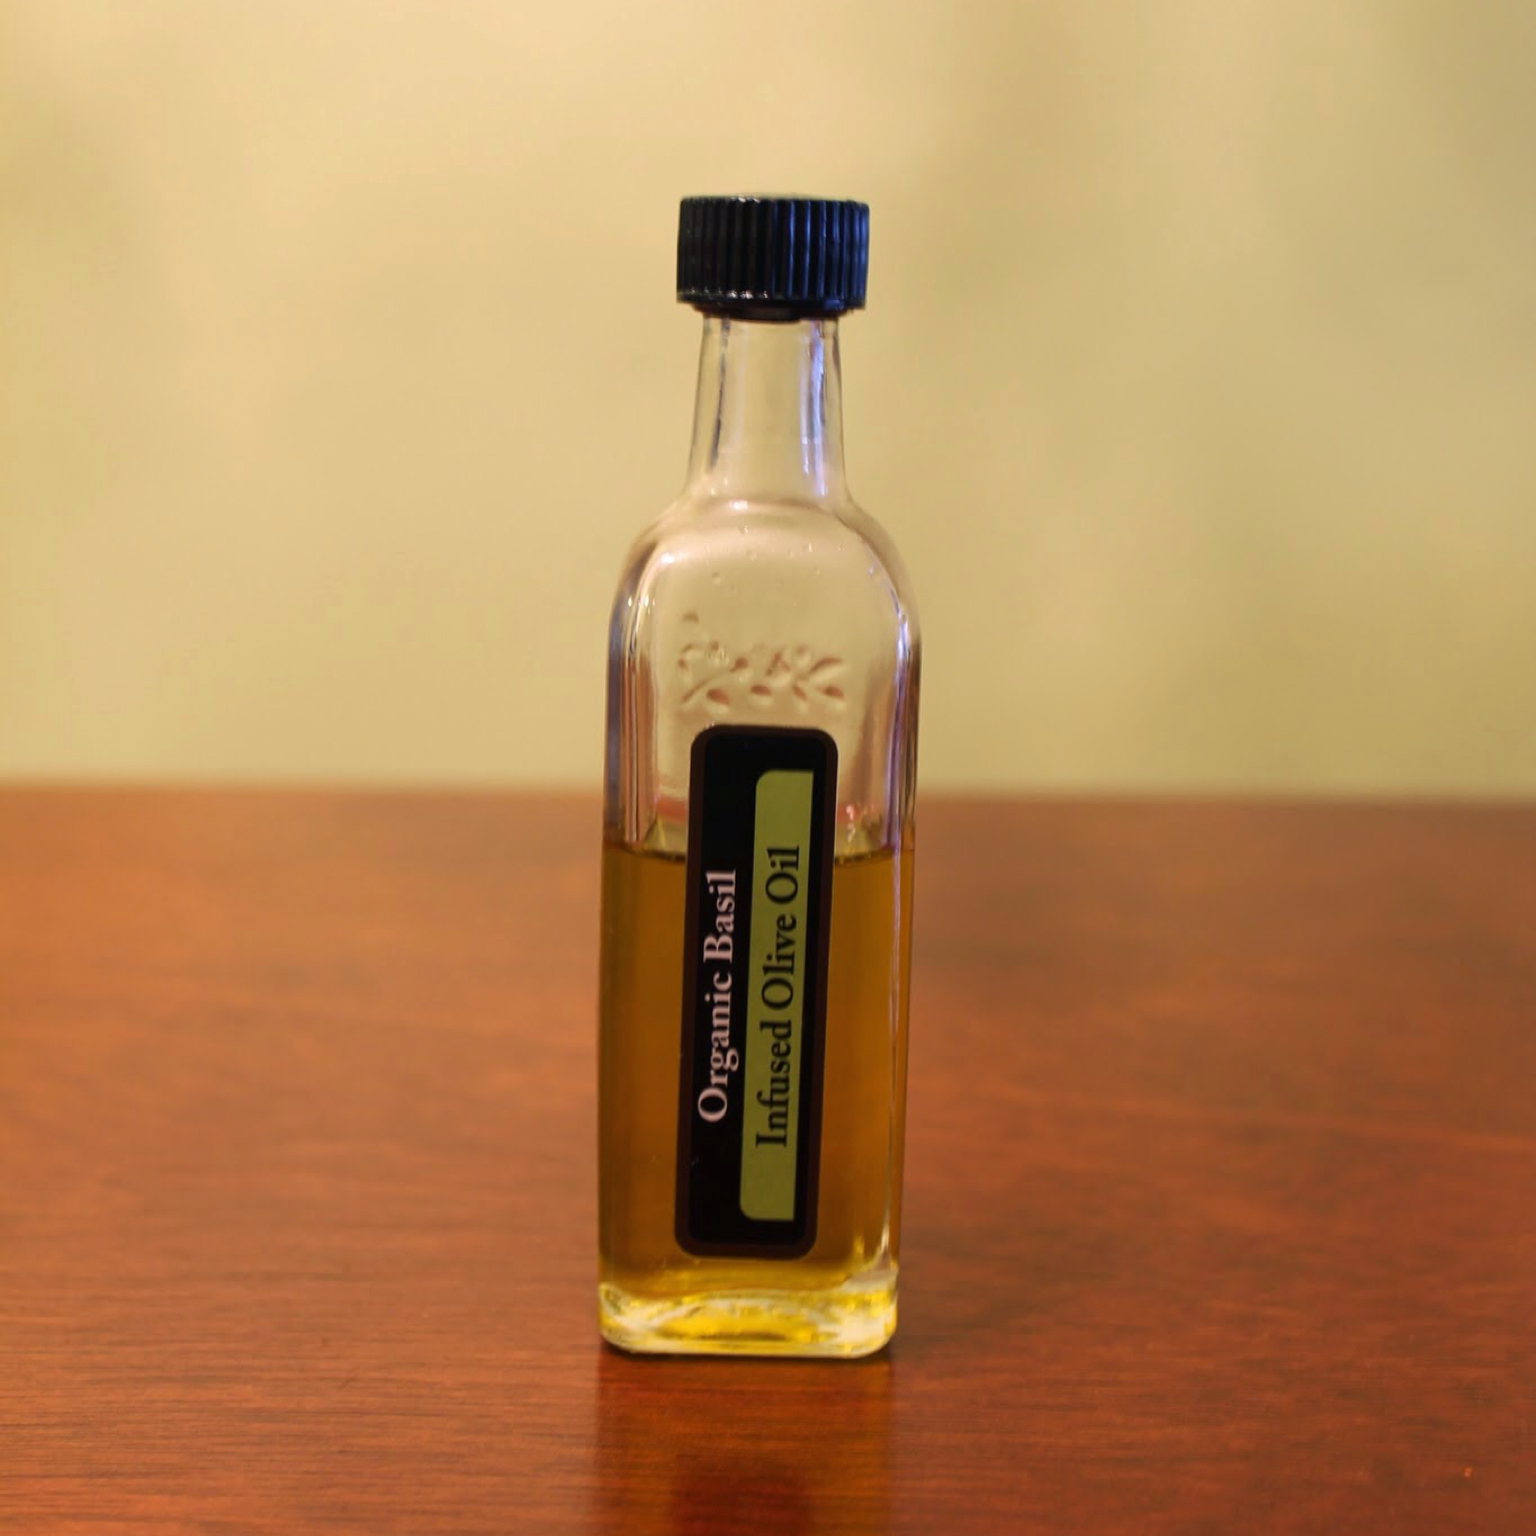 Botulism is definitely a concern when making any kind of infused olive oil, especially with garlic-infused olive oil. Infused olive oil will generally keep for up to one month, especially if kept refrigerated. If the ingredients in the olive oil start to show any signs of spoilage, discard the rest of the oil immediately.